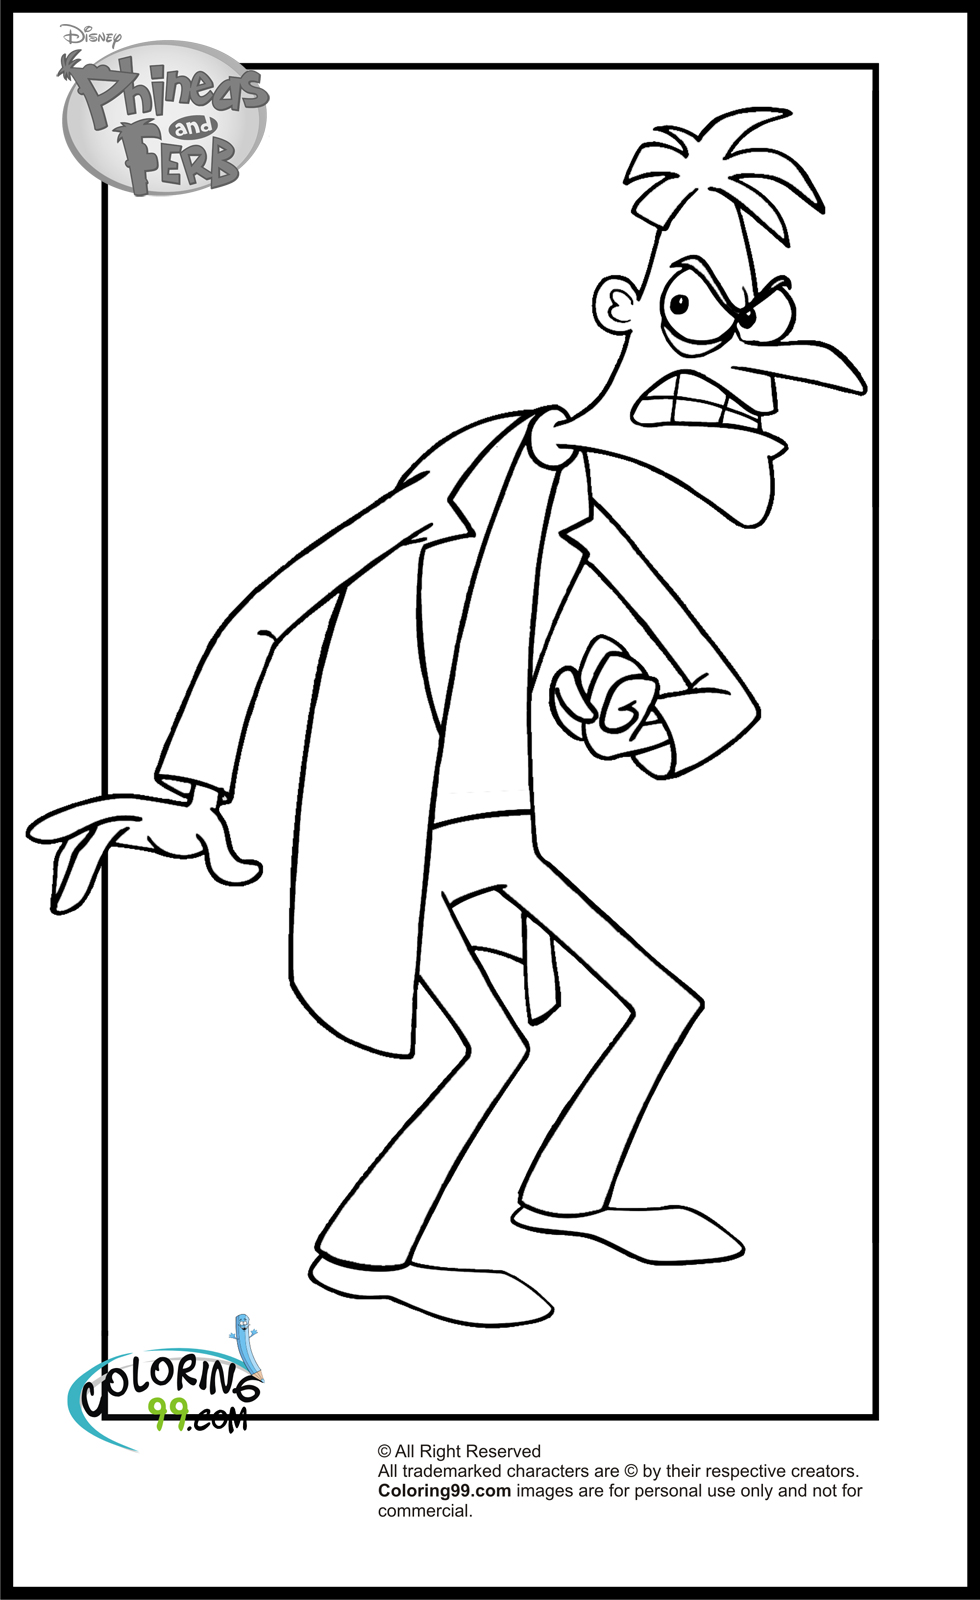 coloring printables phineas and ferb coloring pages minister coloring printables coloring